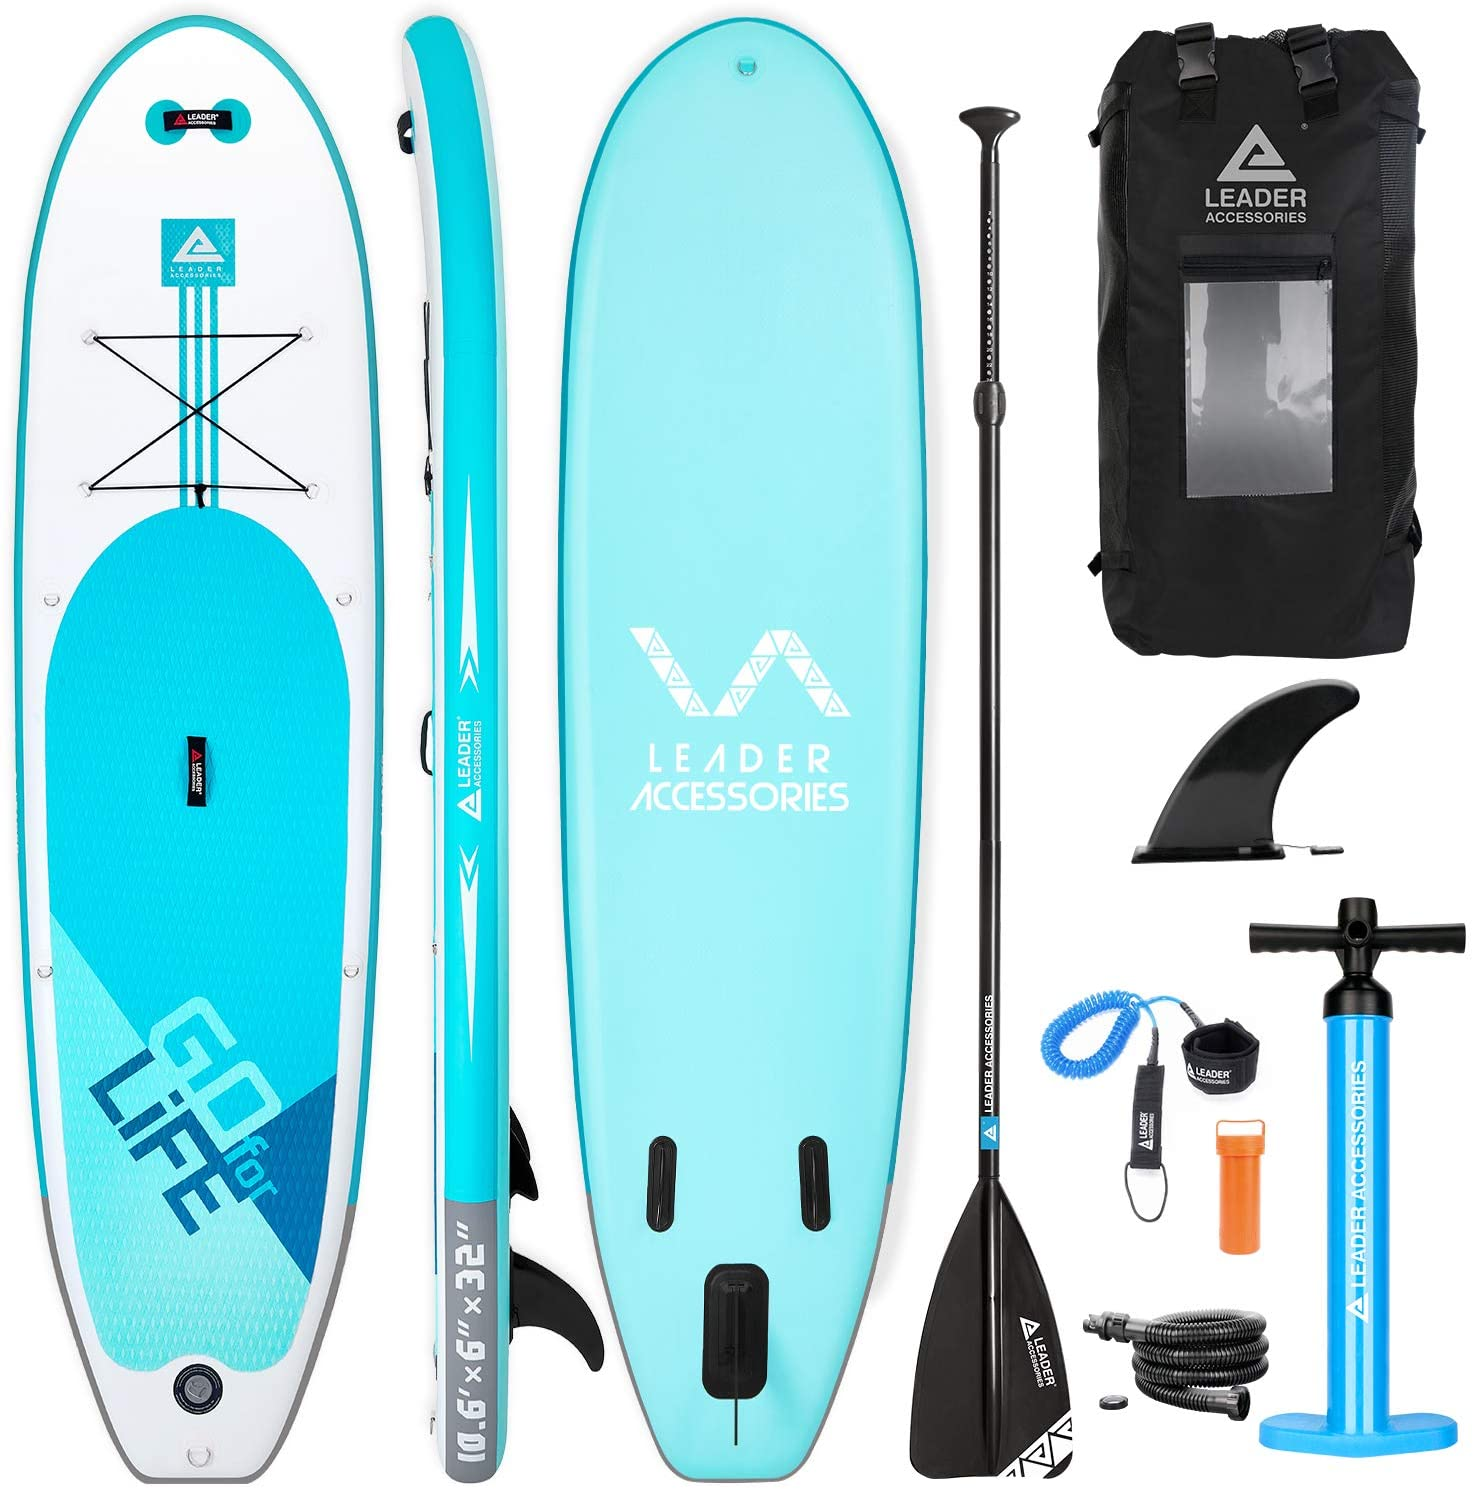 Leader accessories all-round inflatable SUP Board